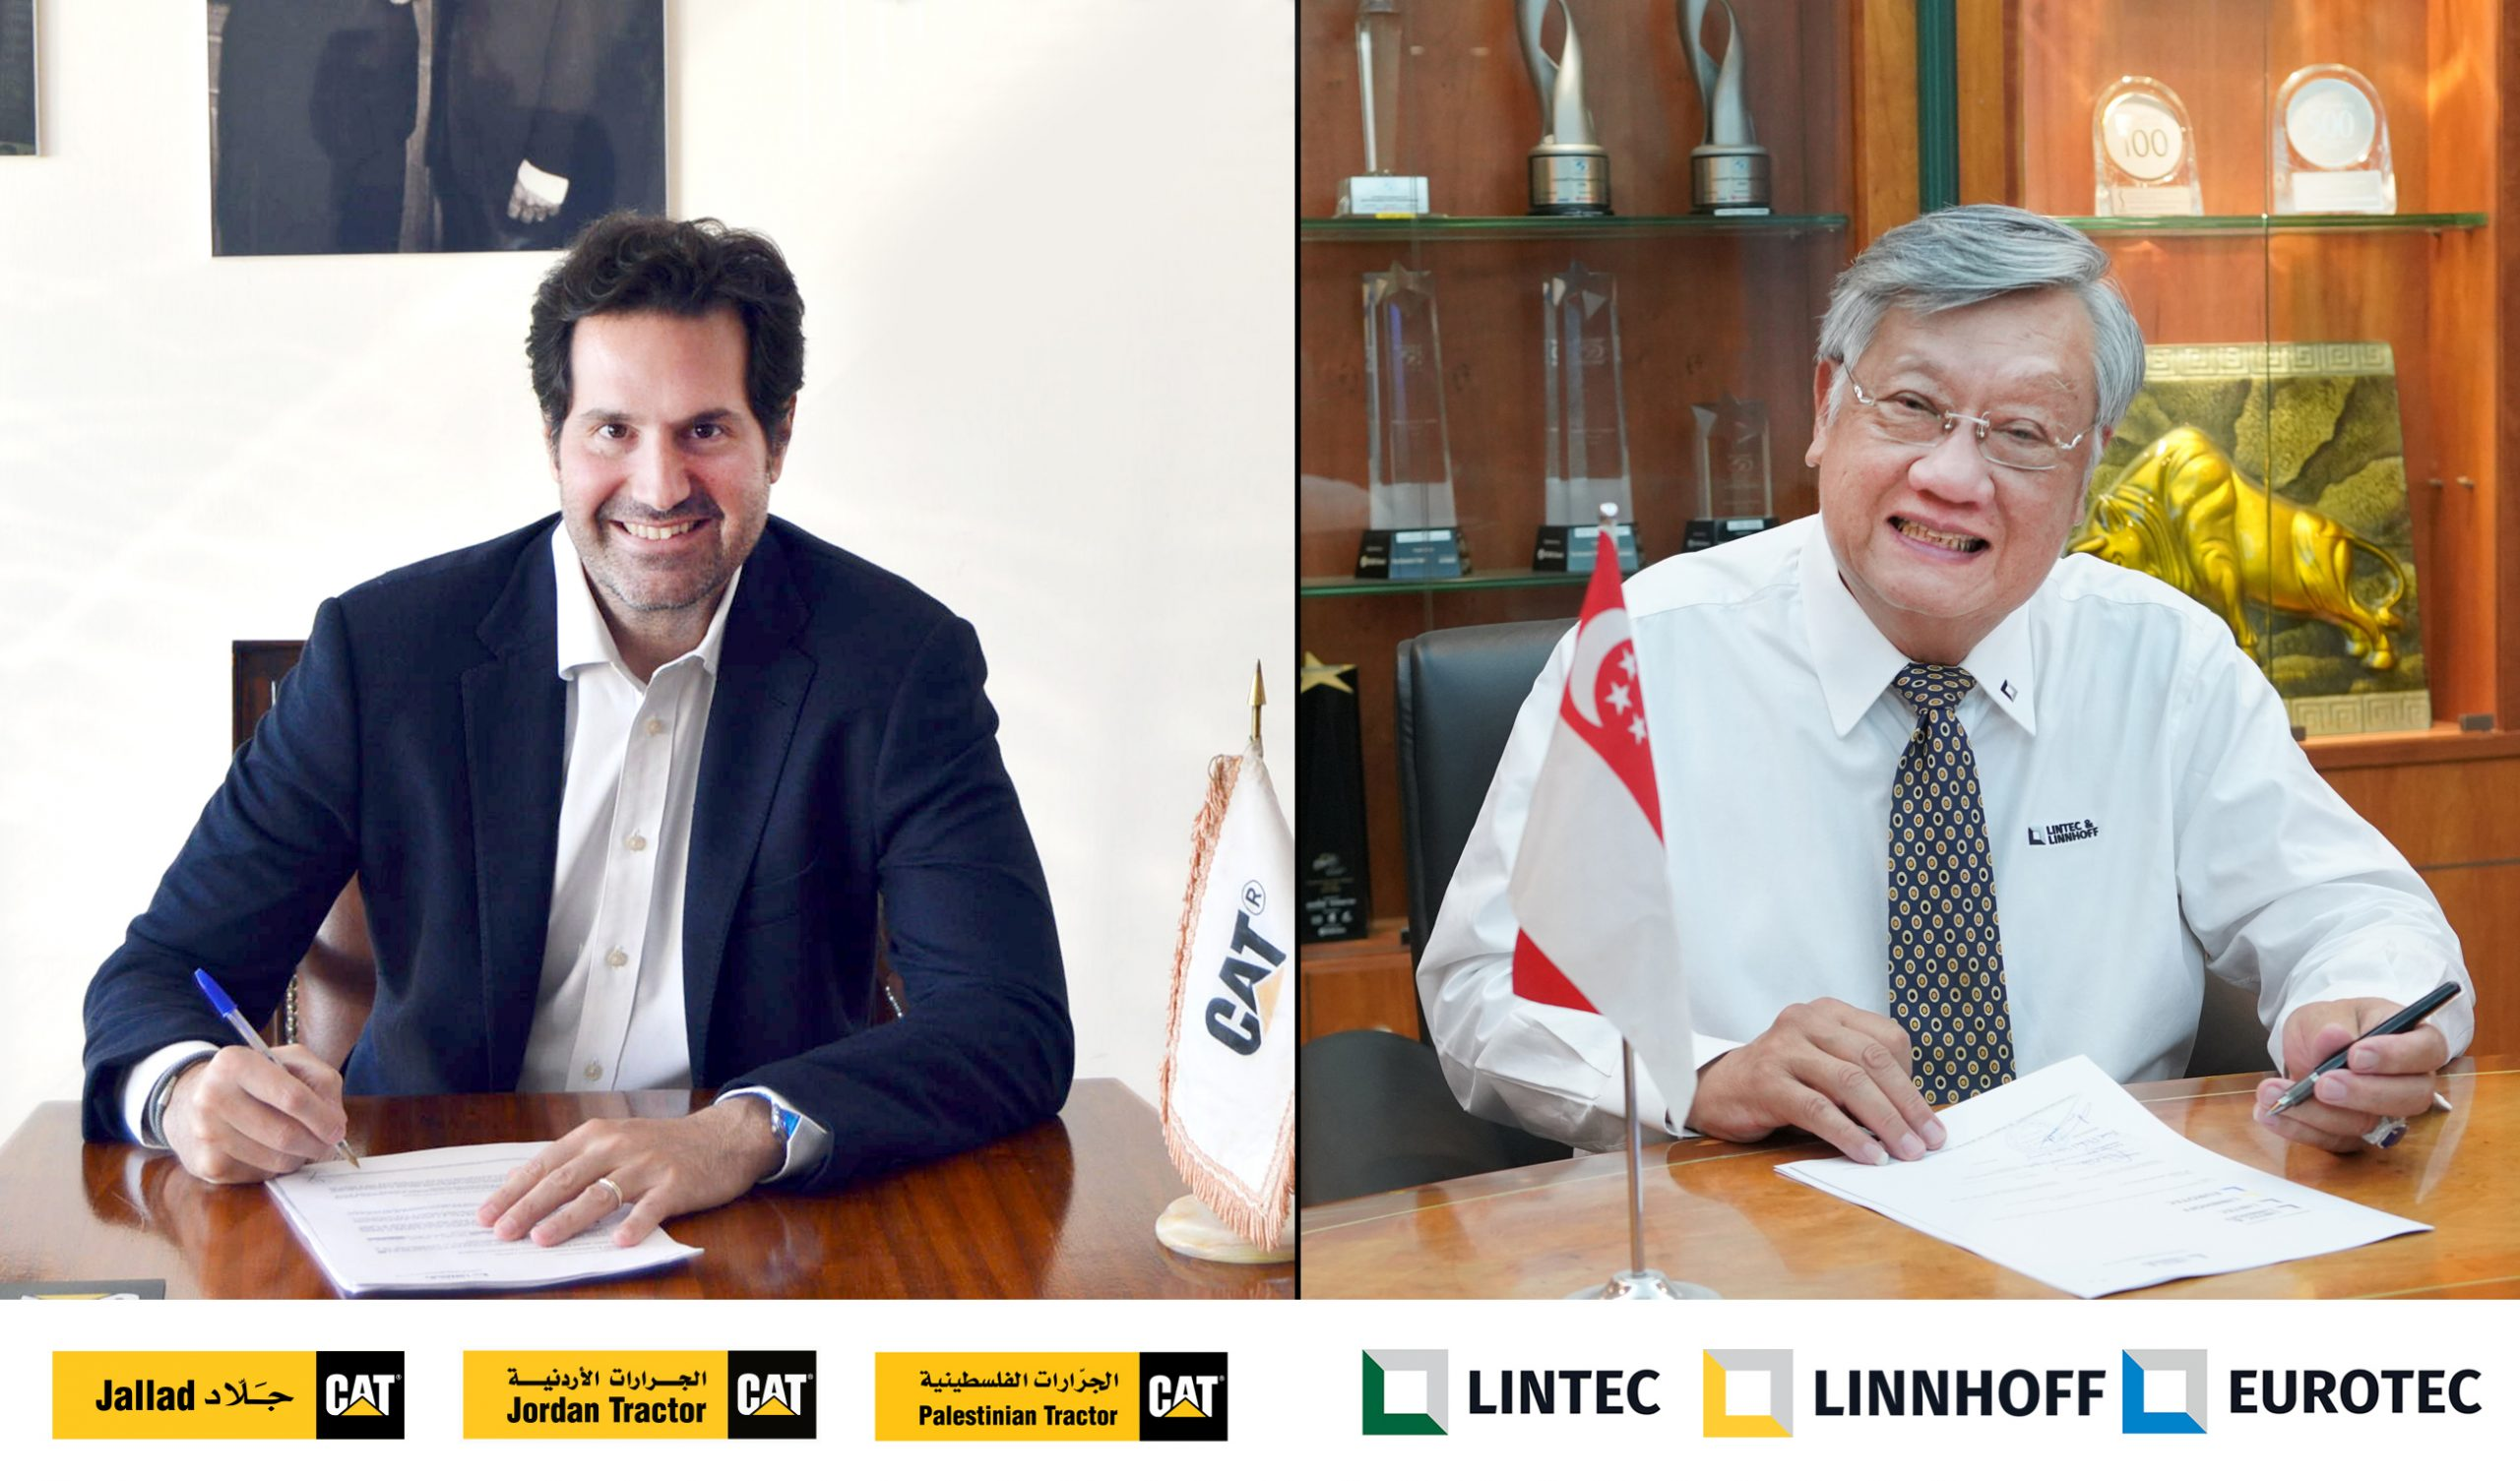 Lintec & Linnhoff continues Middle East expansion with new distributor Jallad Group